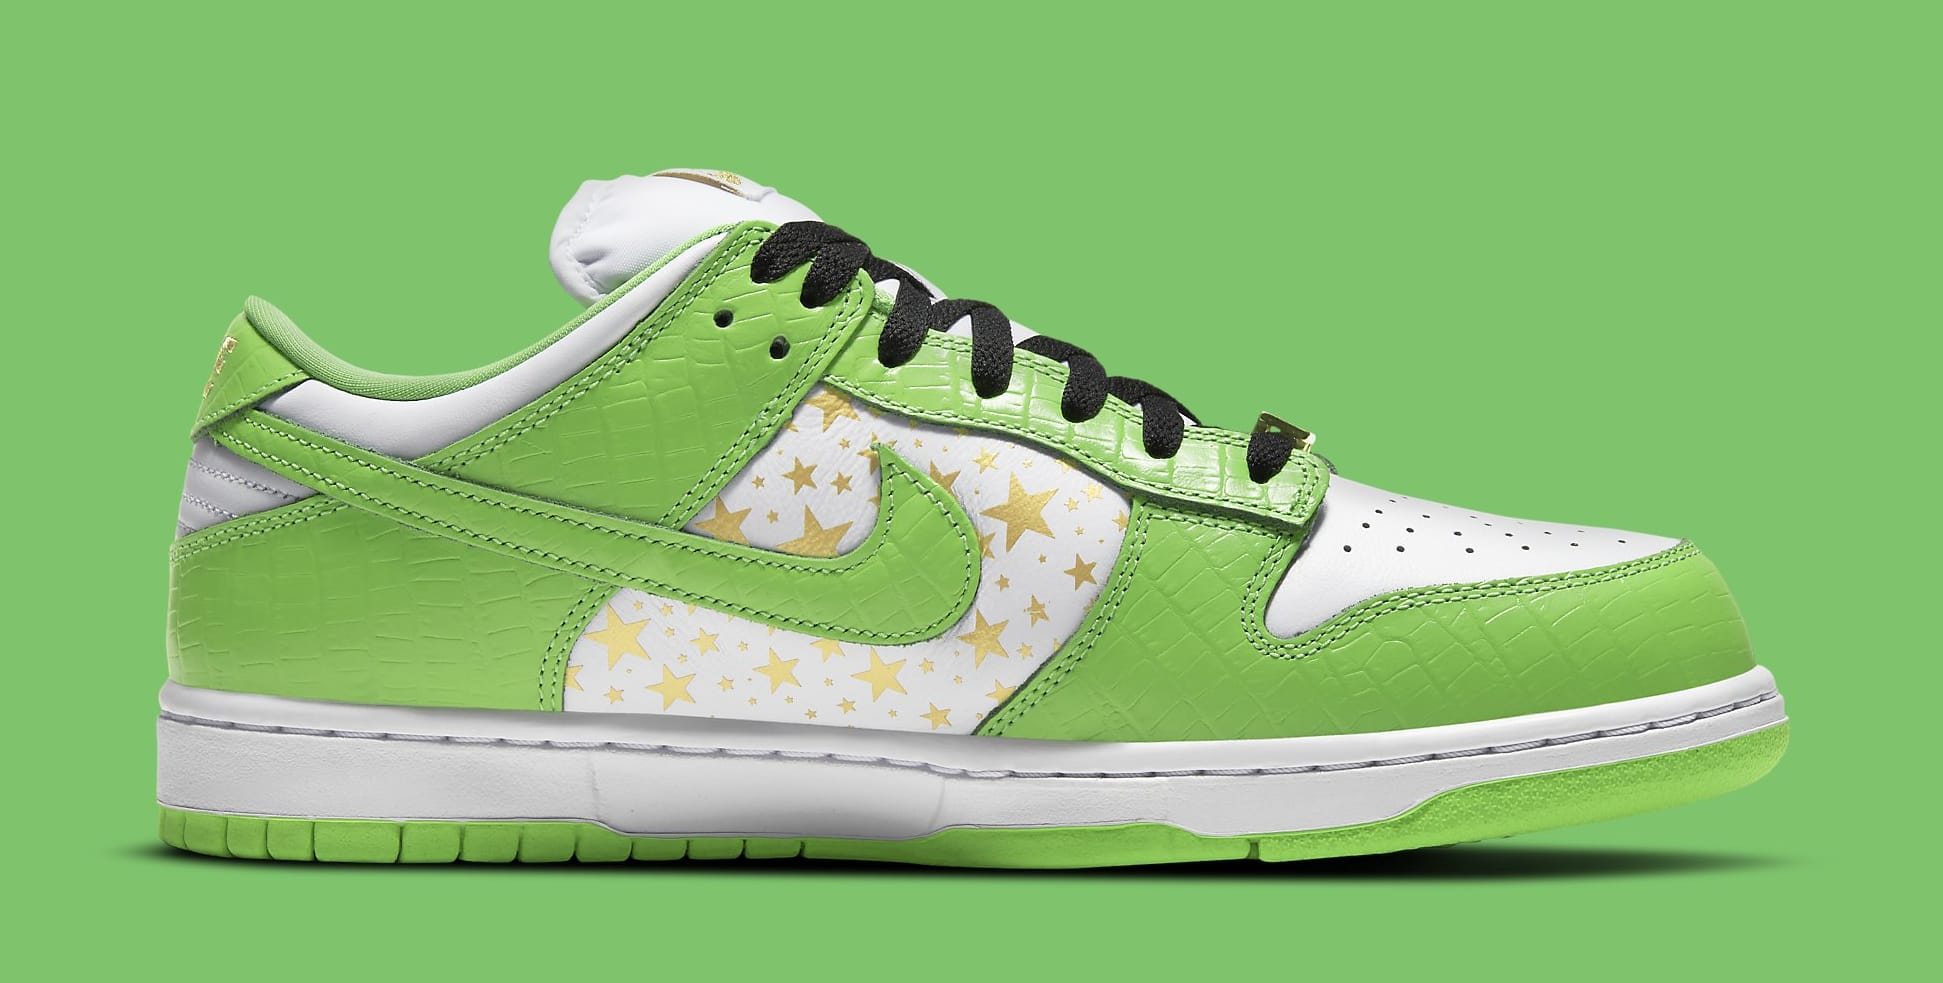 Supreme x Nike SB Dunk Low 'Green' DH3228-101 Medial